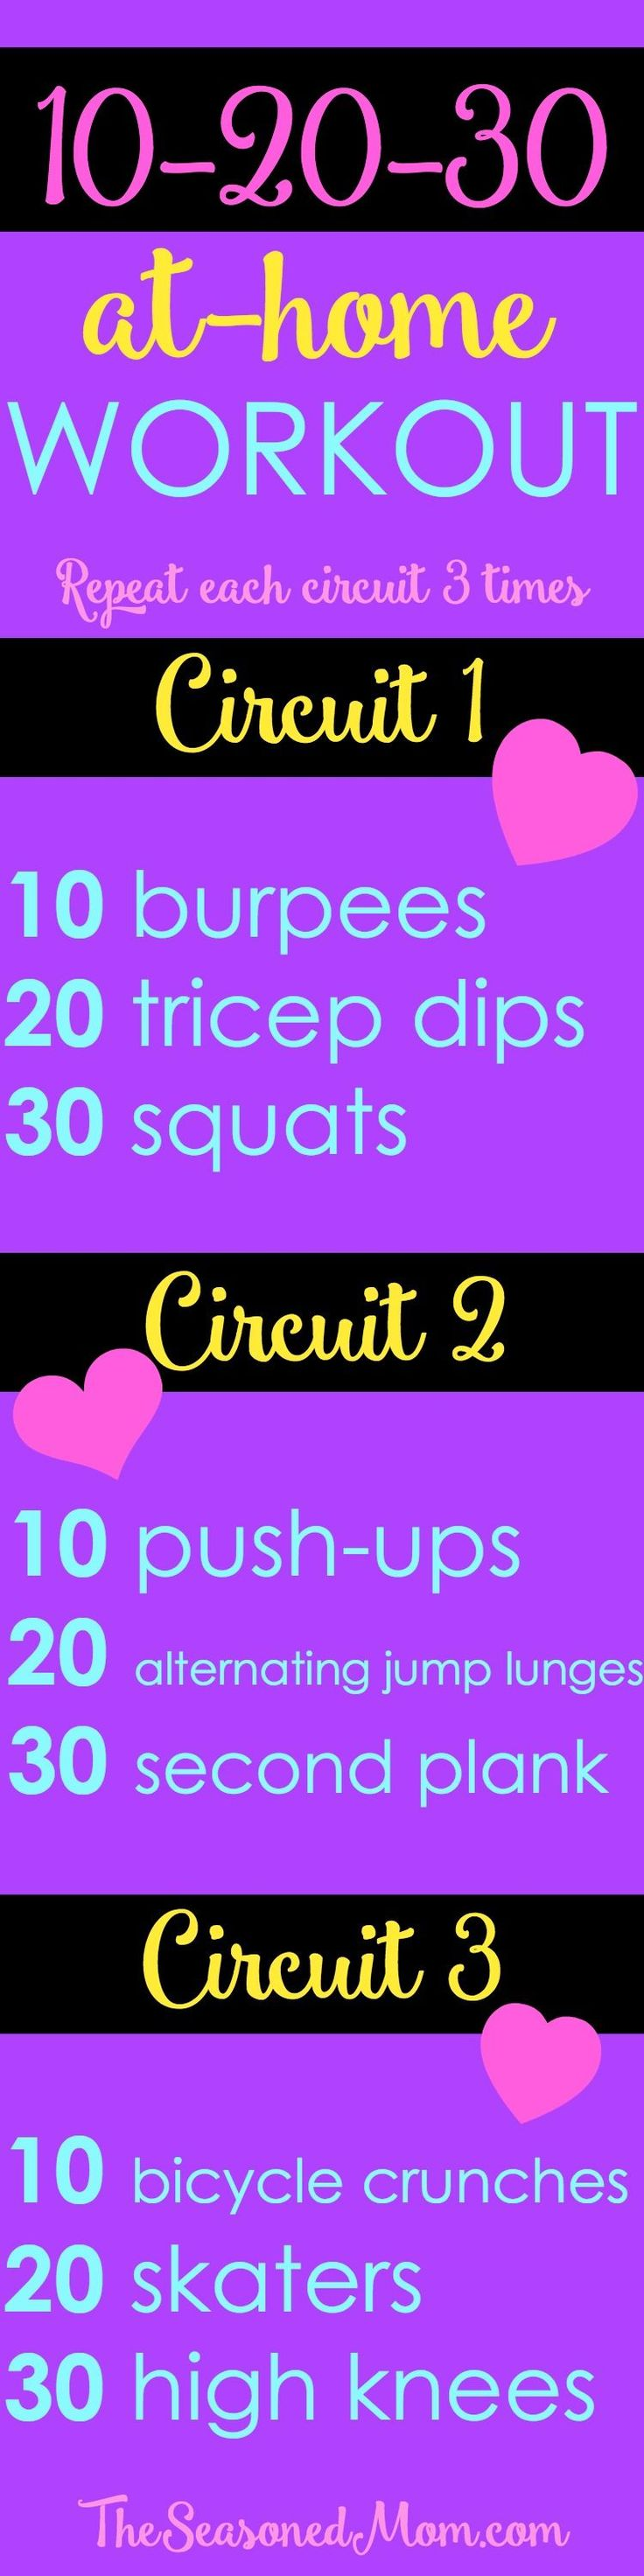 114 Best Fitness Images On Pinterest Work Outs Exercise Workouts Alternating Onoff Switch Circuit Diary Green Monster Blender Muffins